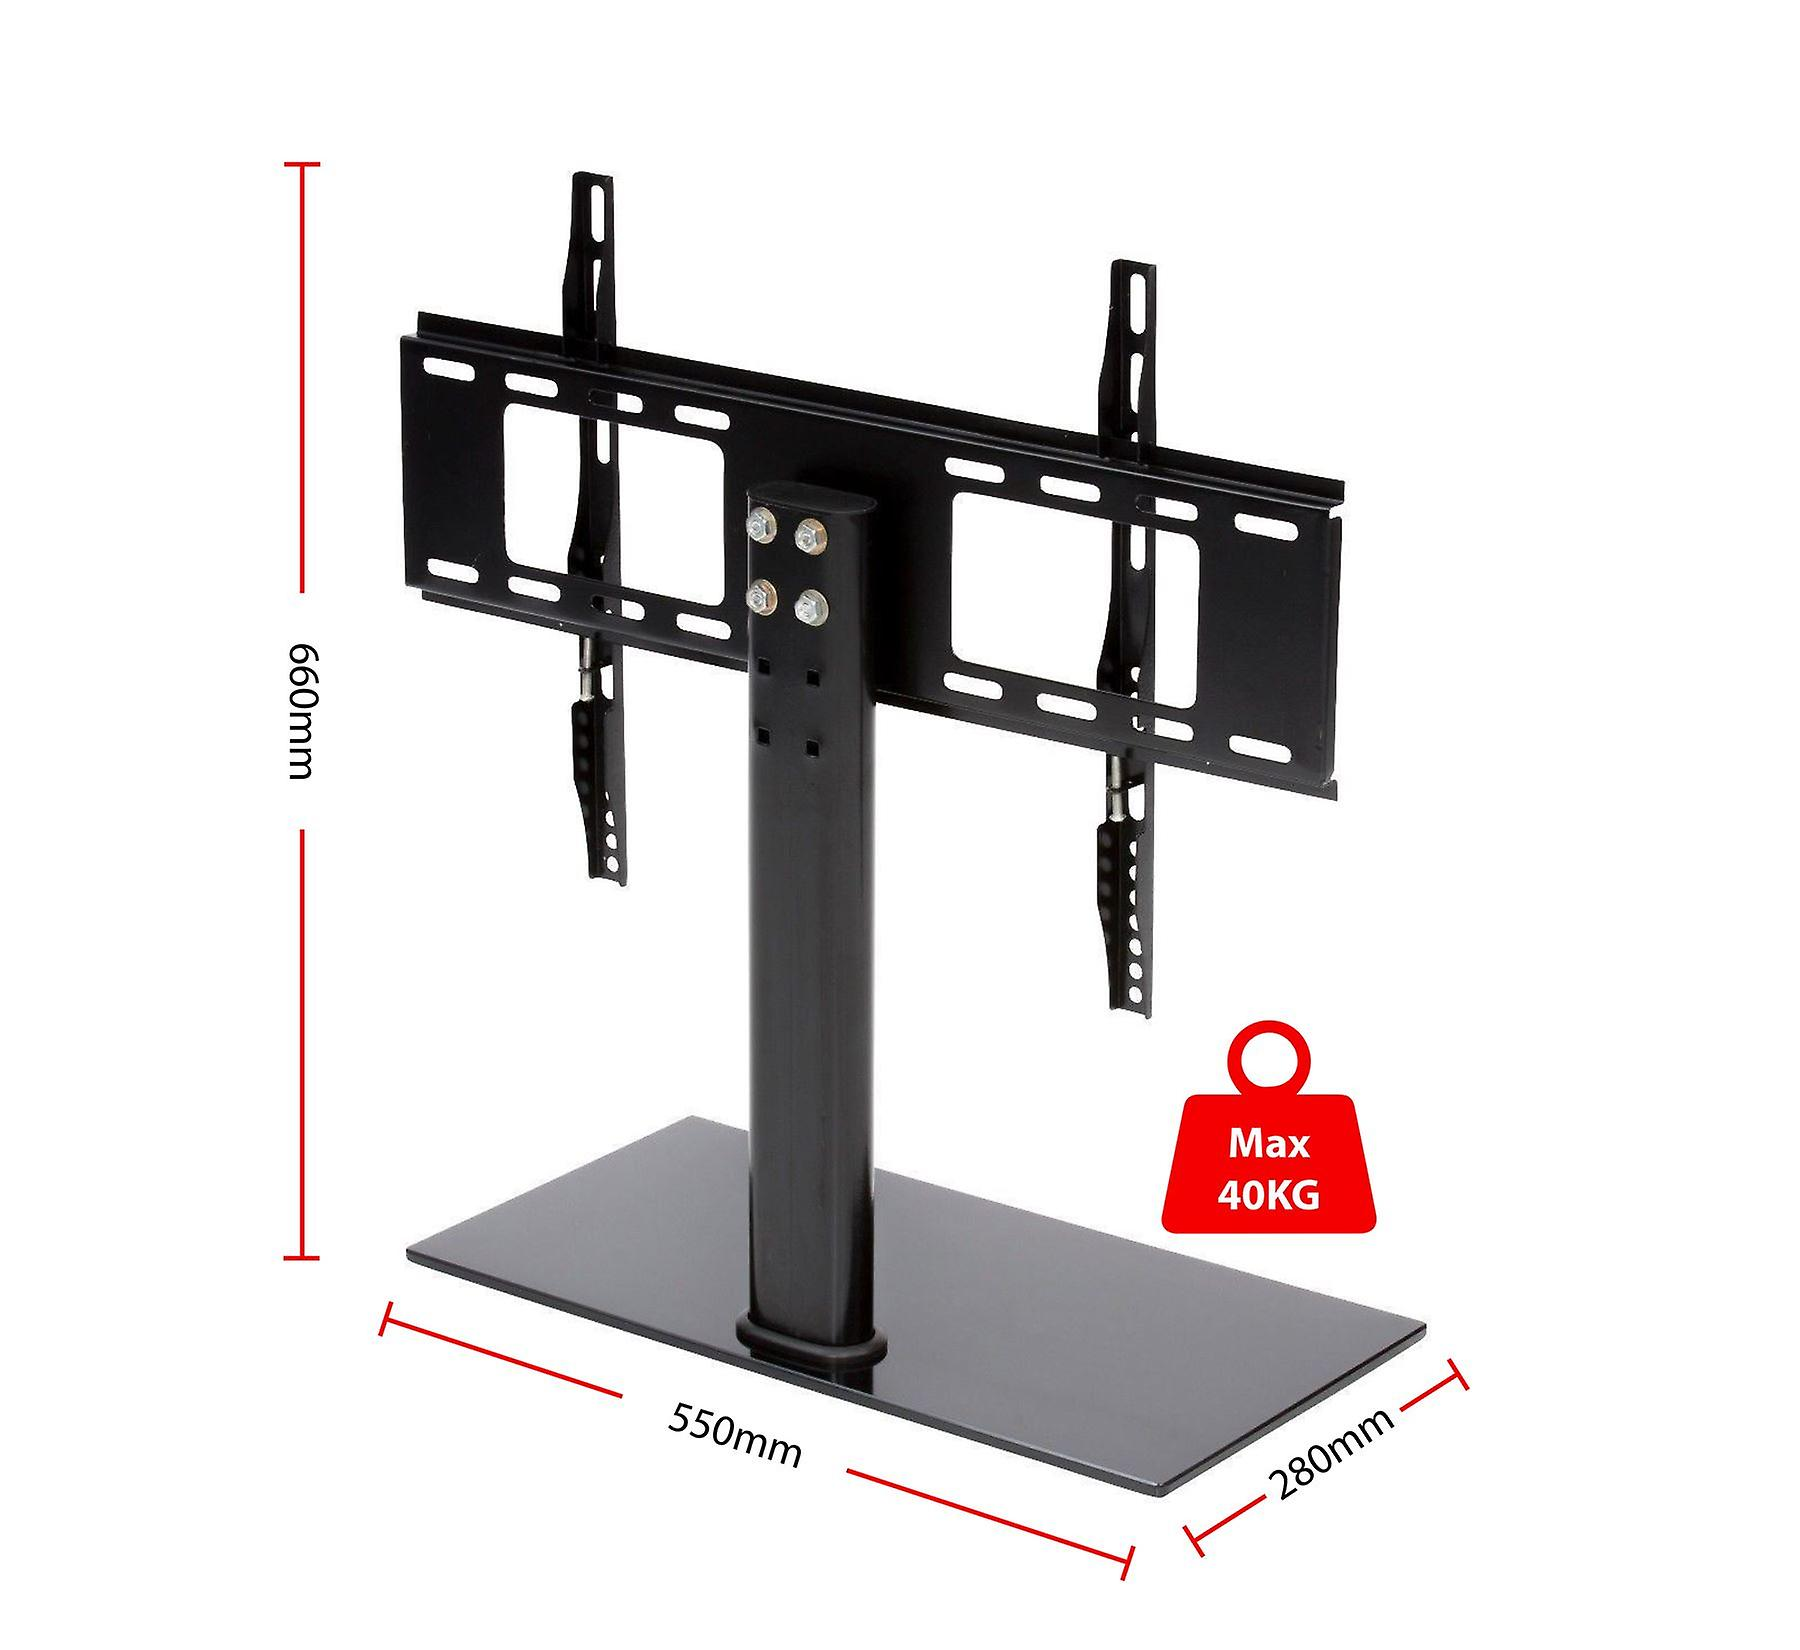 TV Table Top Stand with Glass Base, Height Adjustable Setting Pedestal Bracket LCD/LED for 37 Inch to 55 Inch, Black, 28 x 55 x 66 cm